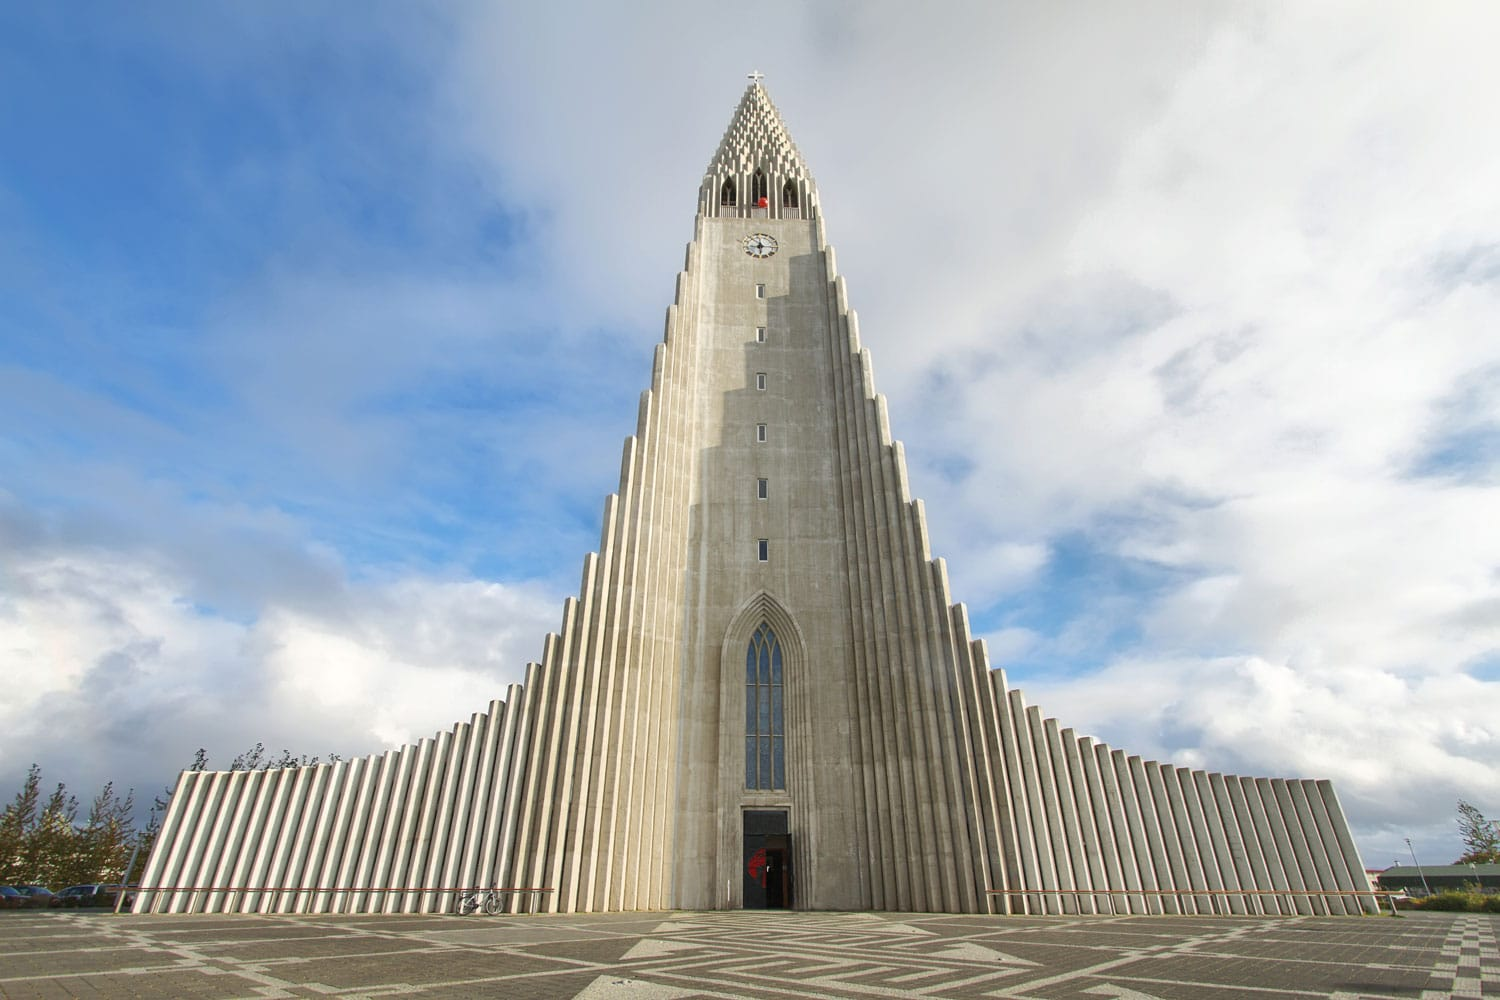 Hallgrimskirkja Cathedral in Reykjavik, Iceland. At 73 metres (244 ft), it is the largest church in Iceland.